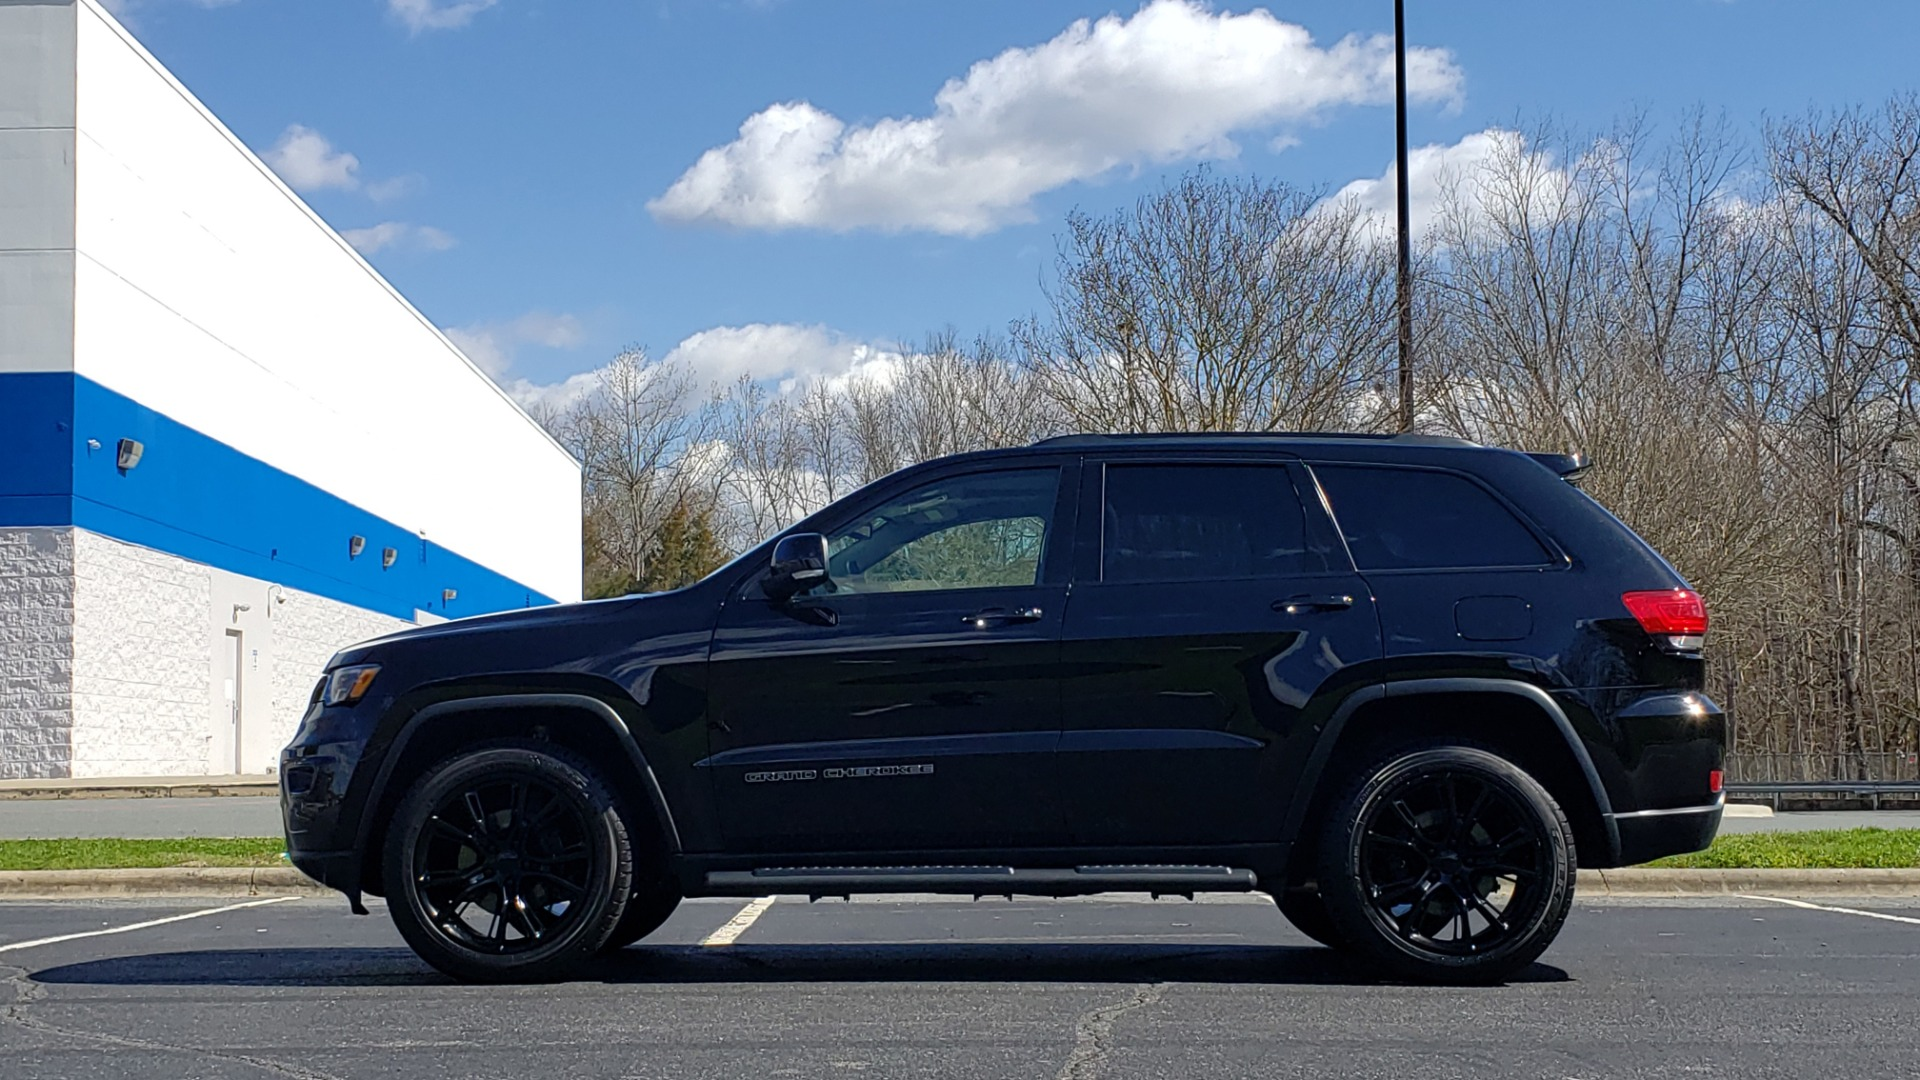 Used 2018 Jeep GRAND CHEROKEE LIMITED 4X4 / NAV / SUNROOF / HTD STS / REARVIEW for sale Sold at Formula Imports in Charlotte NC 28227 2